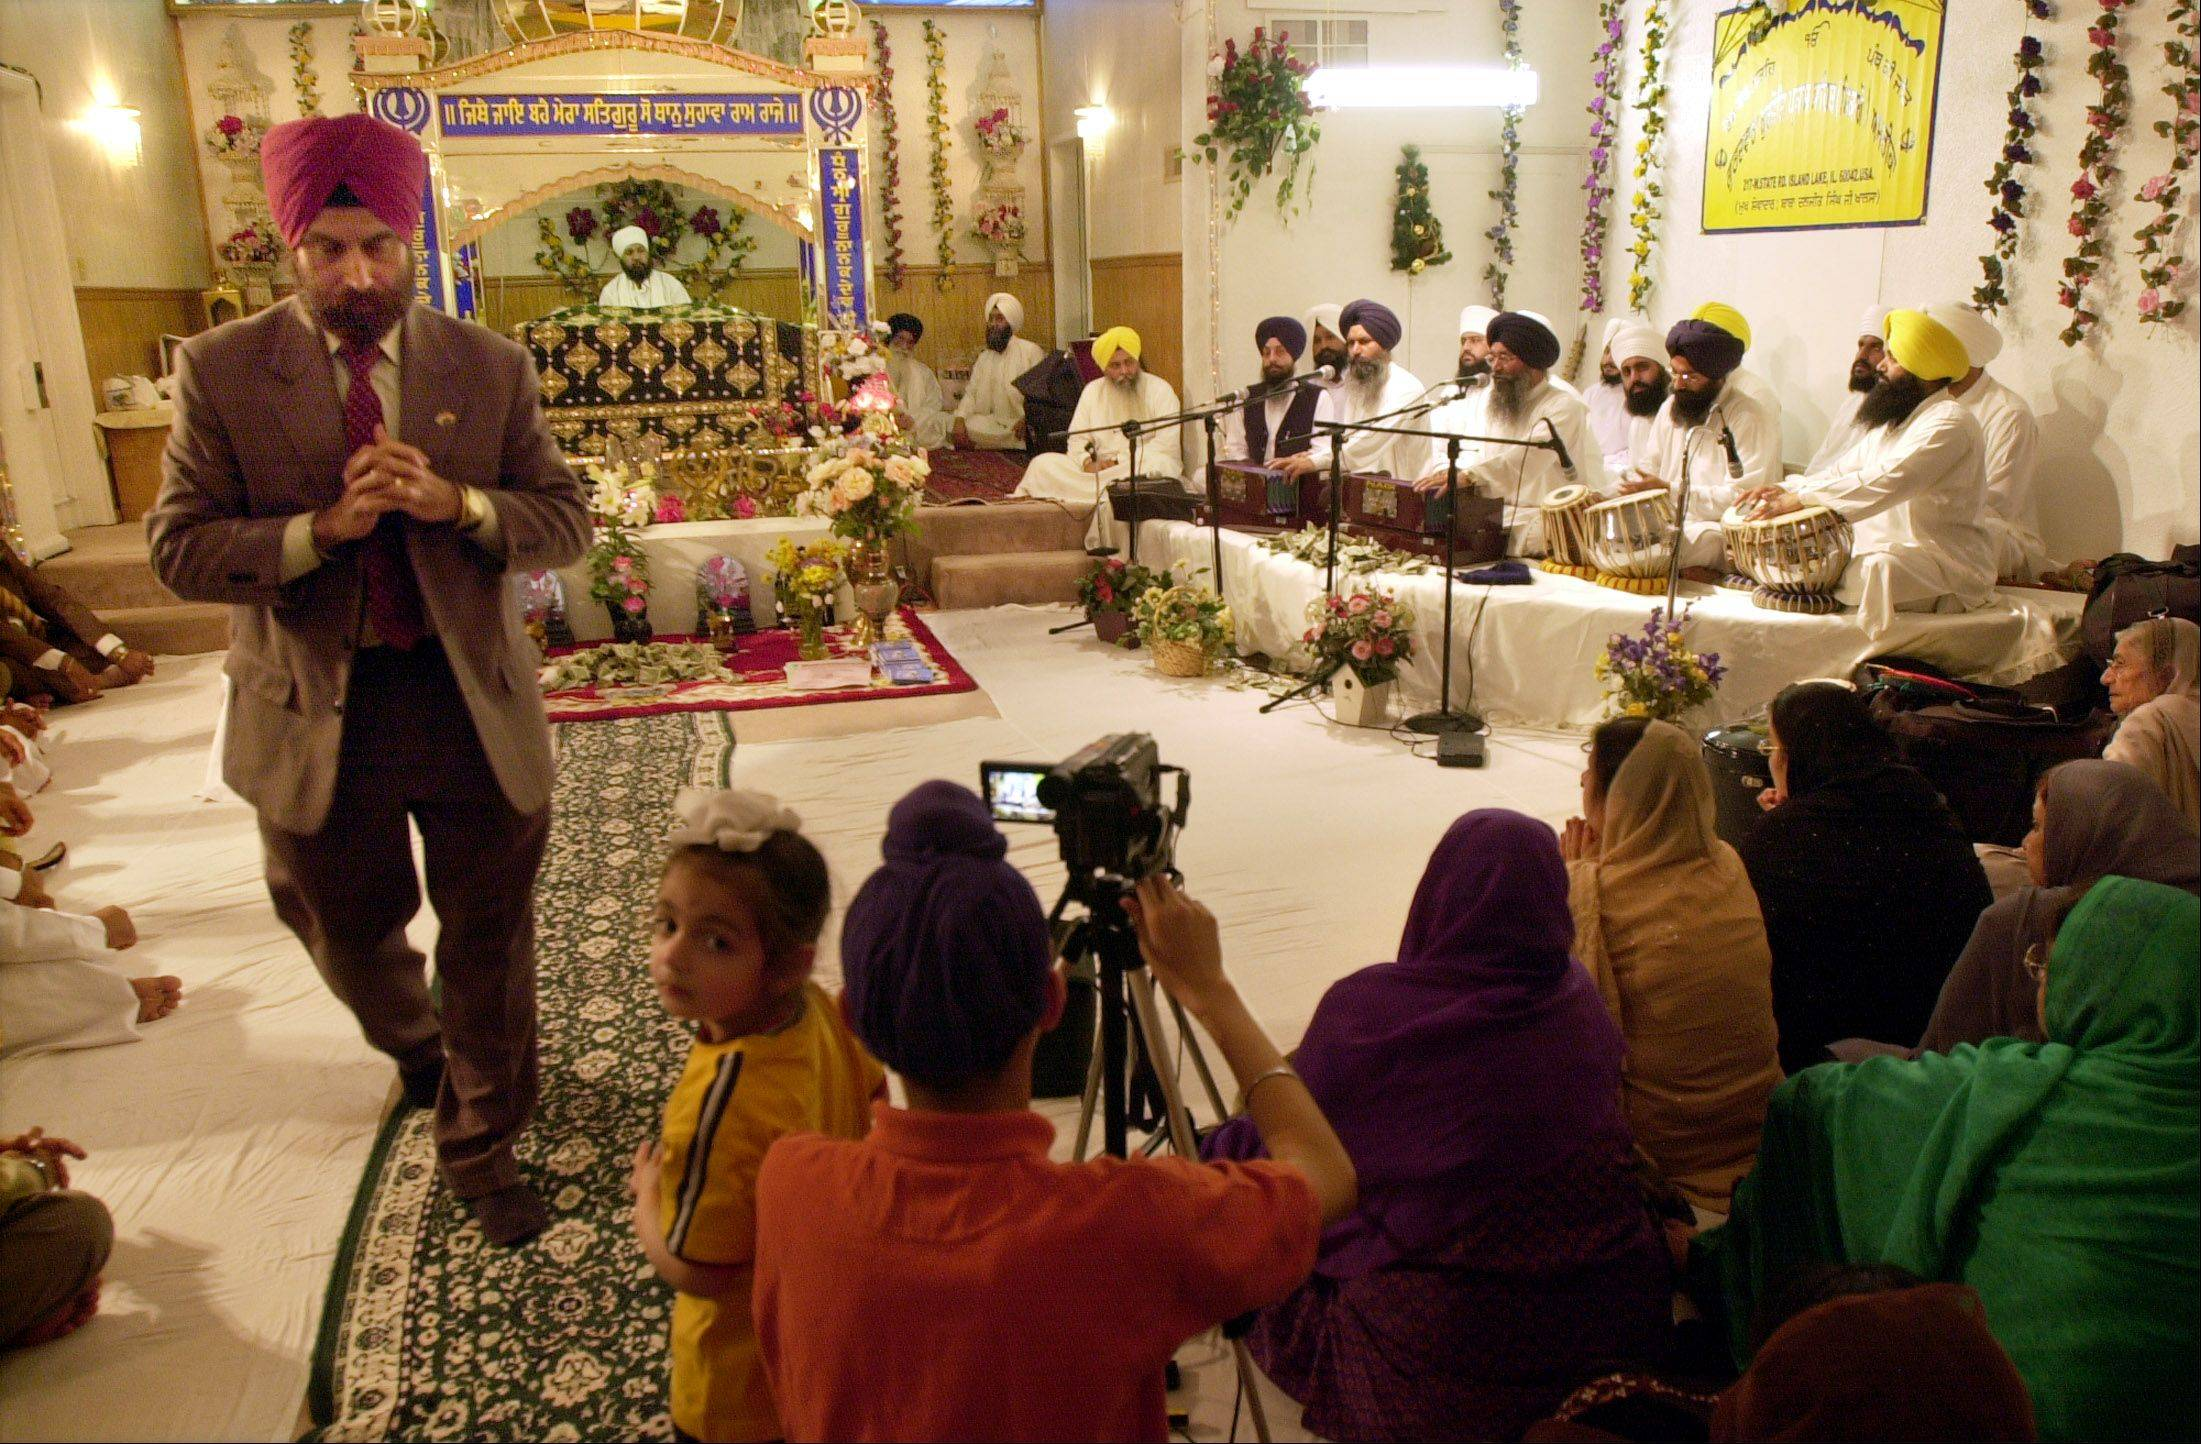 Sikh mission in Island Lake shut down for safety violations